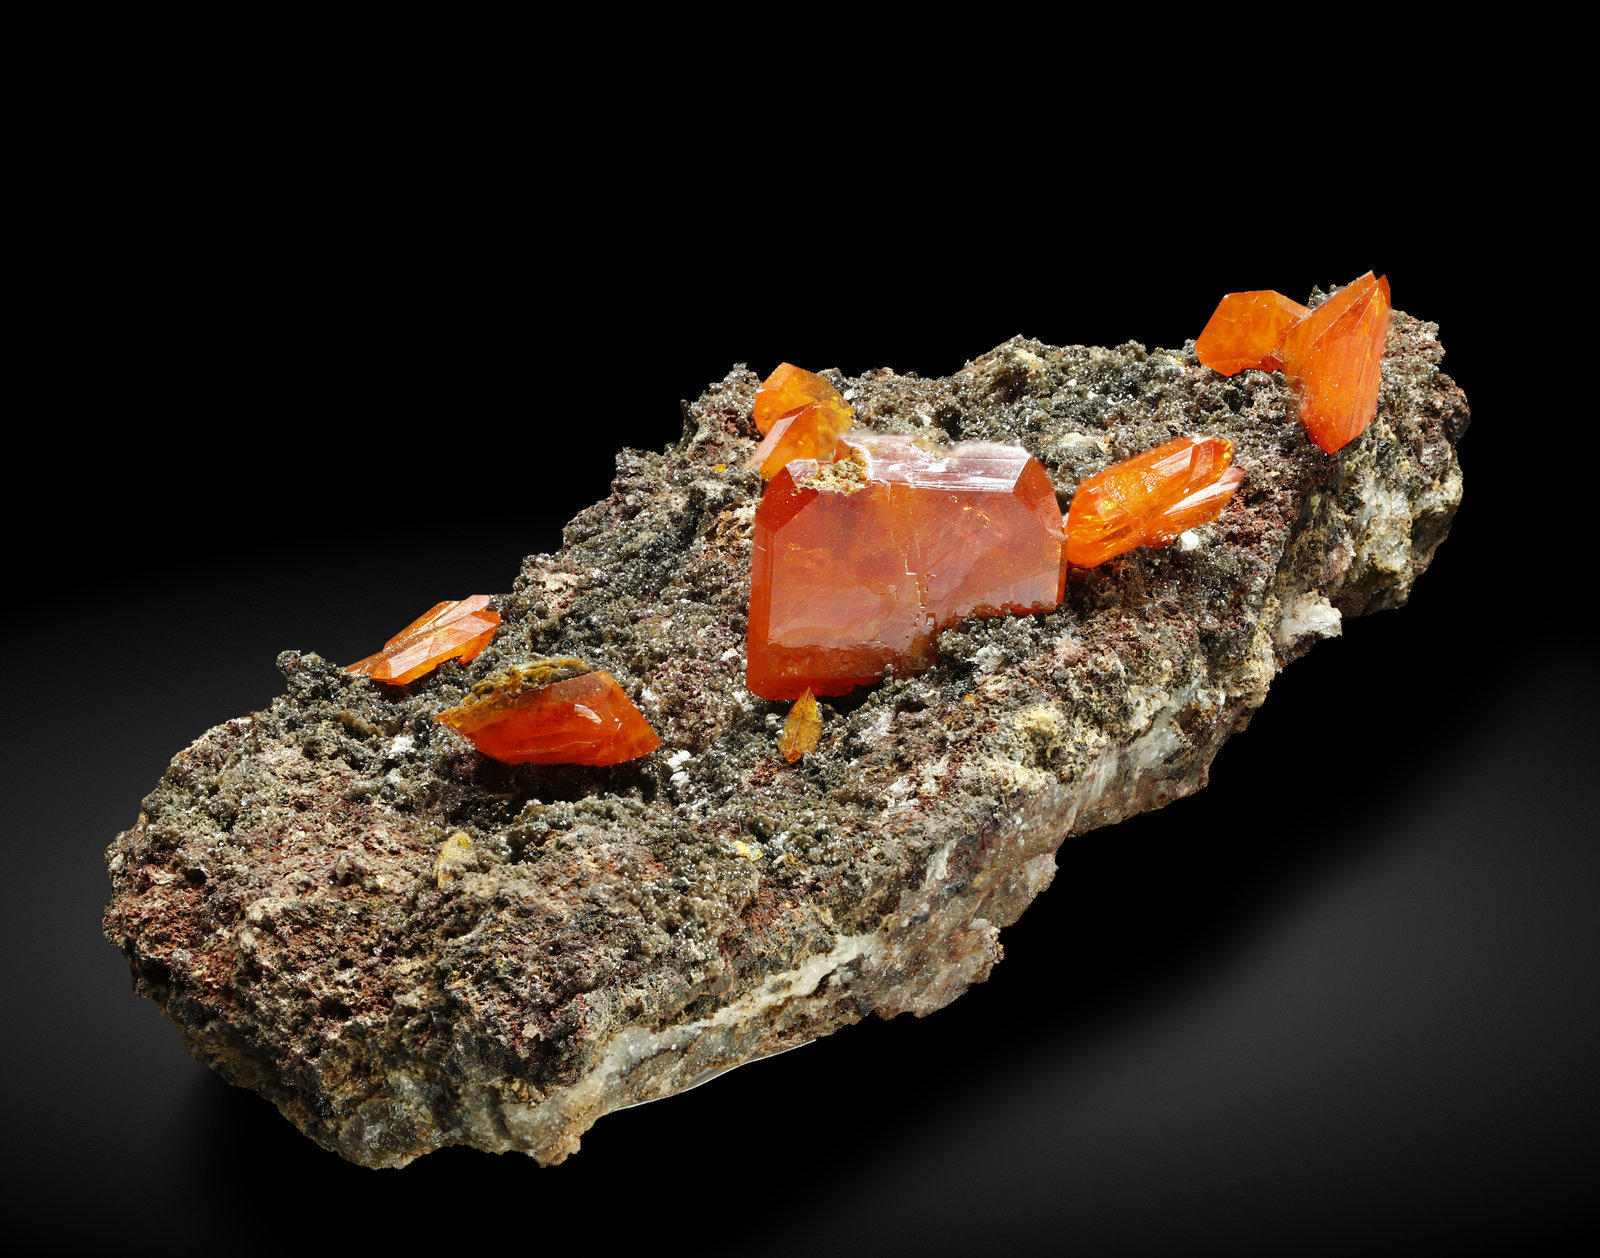 specimens/s_imagesAJ6/Wulfenite-NT89AJ6f.jpg